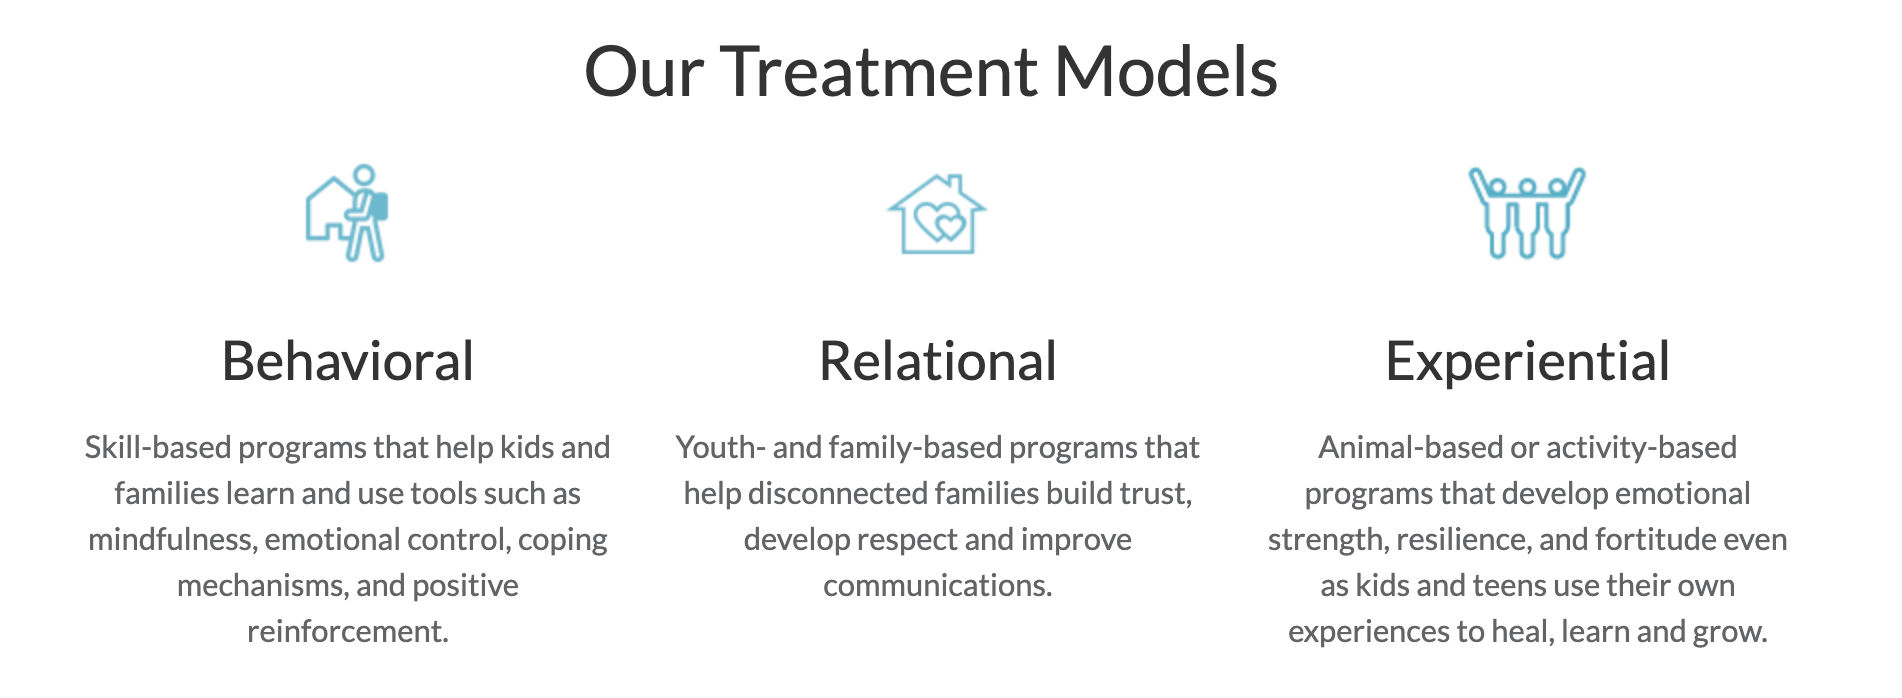 Treatment Models Graphic